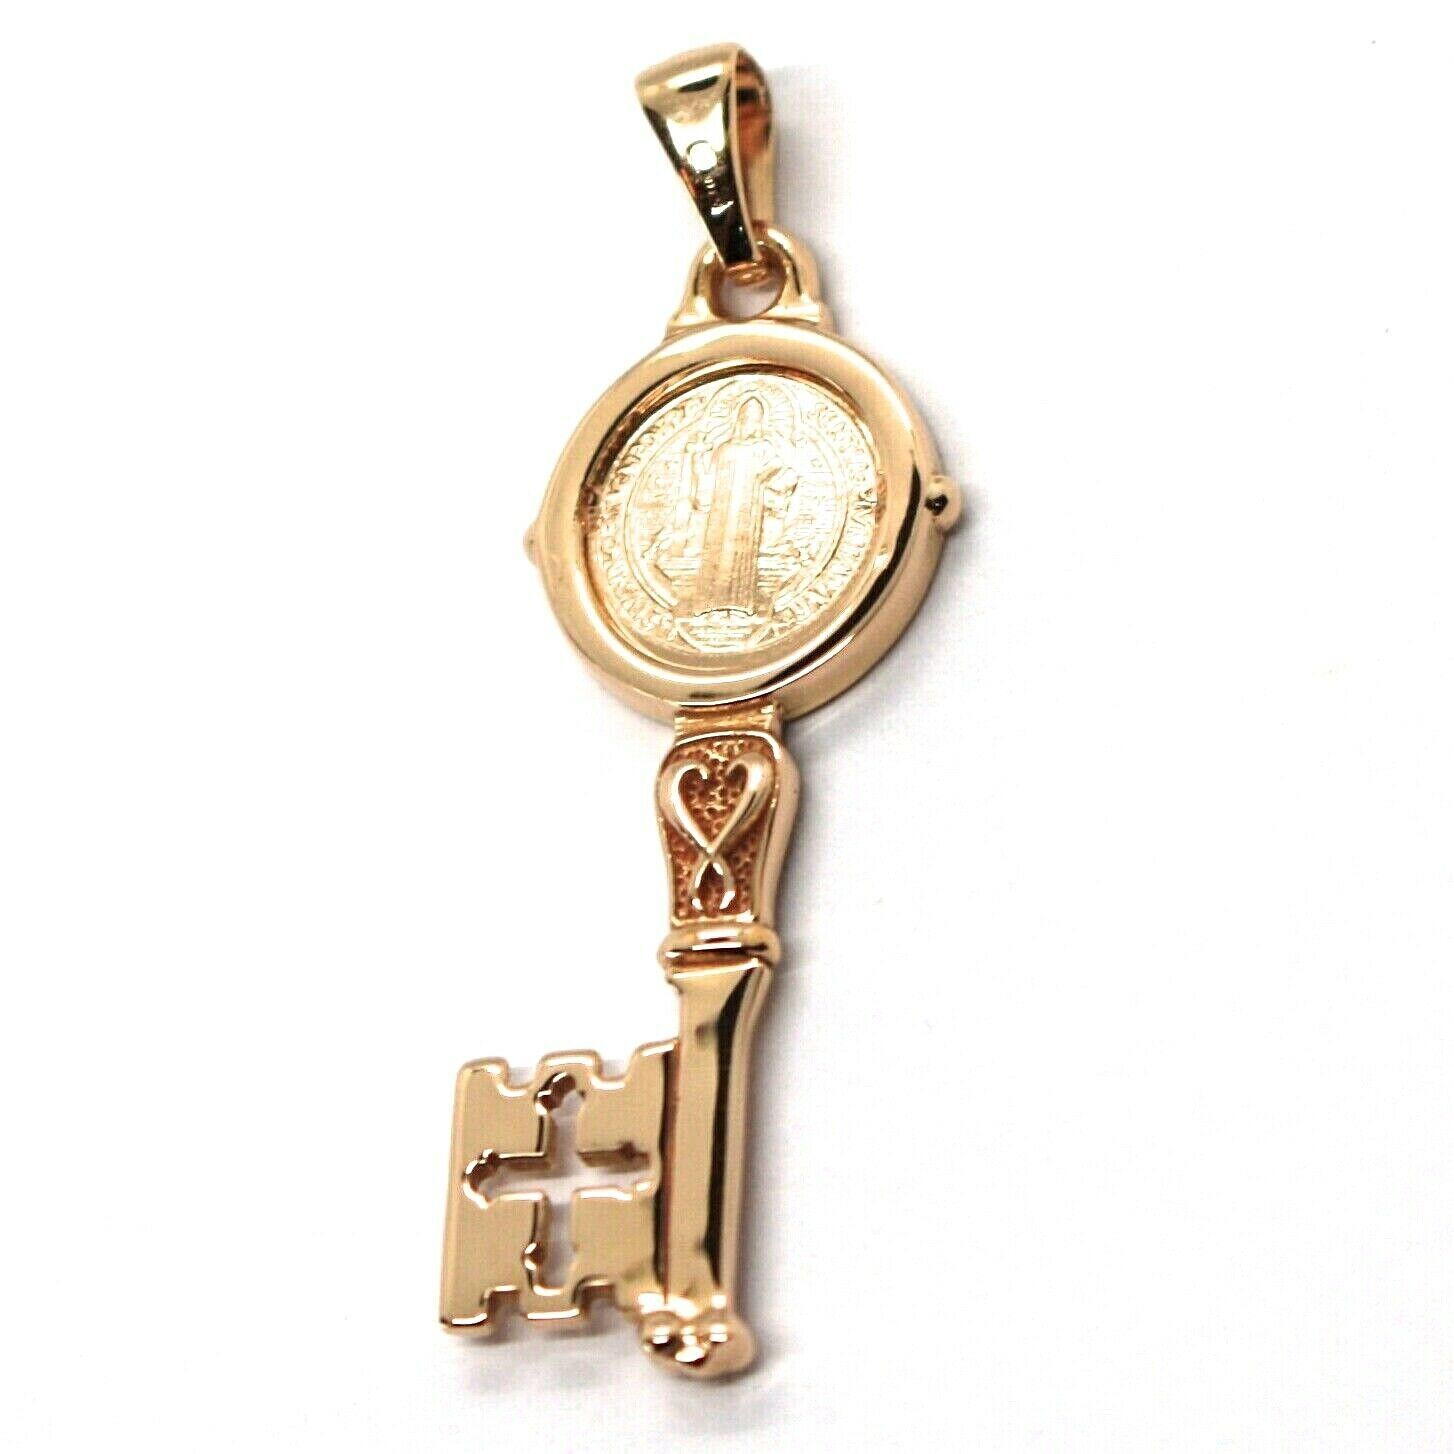 SOLID 18K ROSE GOLD KEY PENDANT, SAINT BENEDICT MEDAL, CROSS, 1.2 INCHES